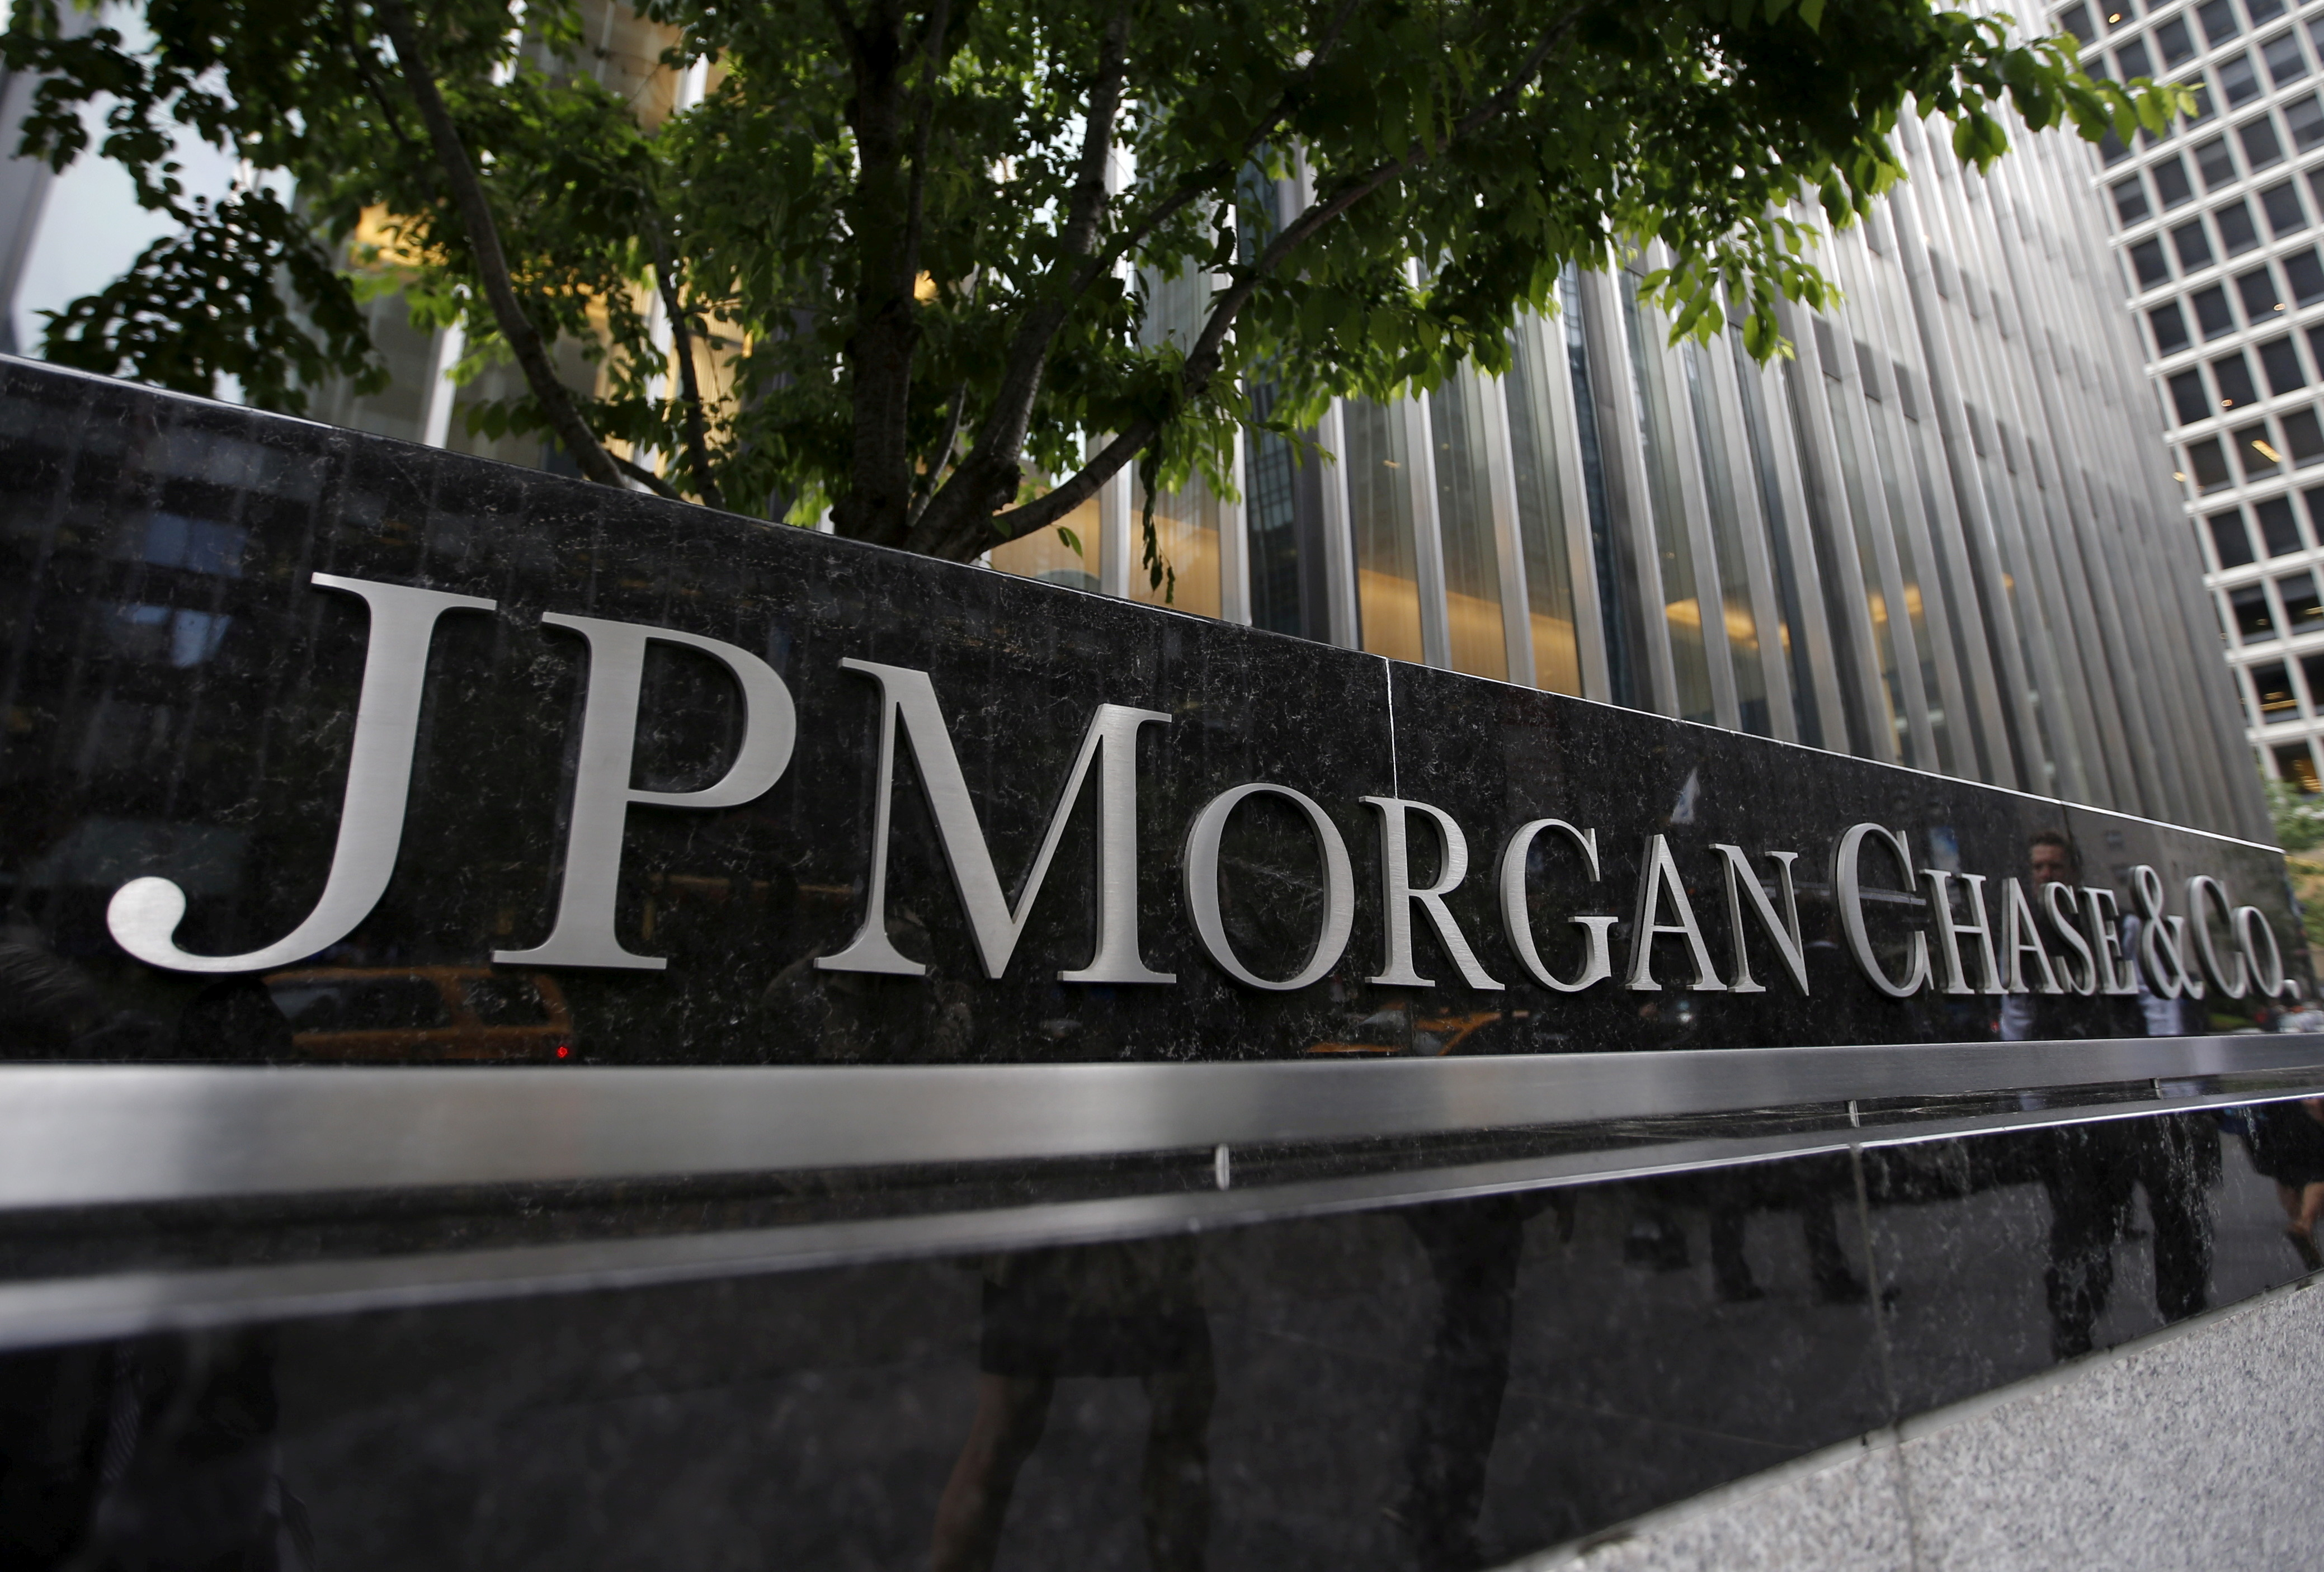 A view of the exterior of the JP Morgan Chase & Co. corporate headquarters in New York City May 20, 2015.  REUTERS/Mike Segar